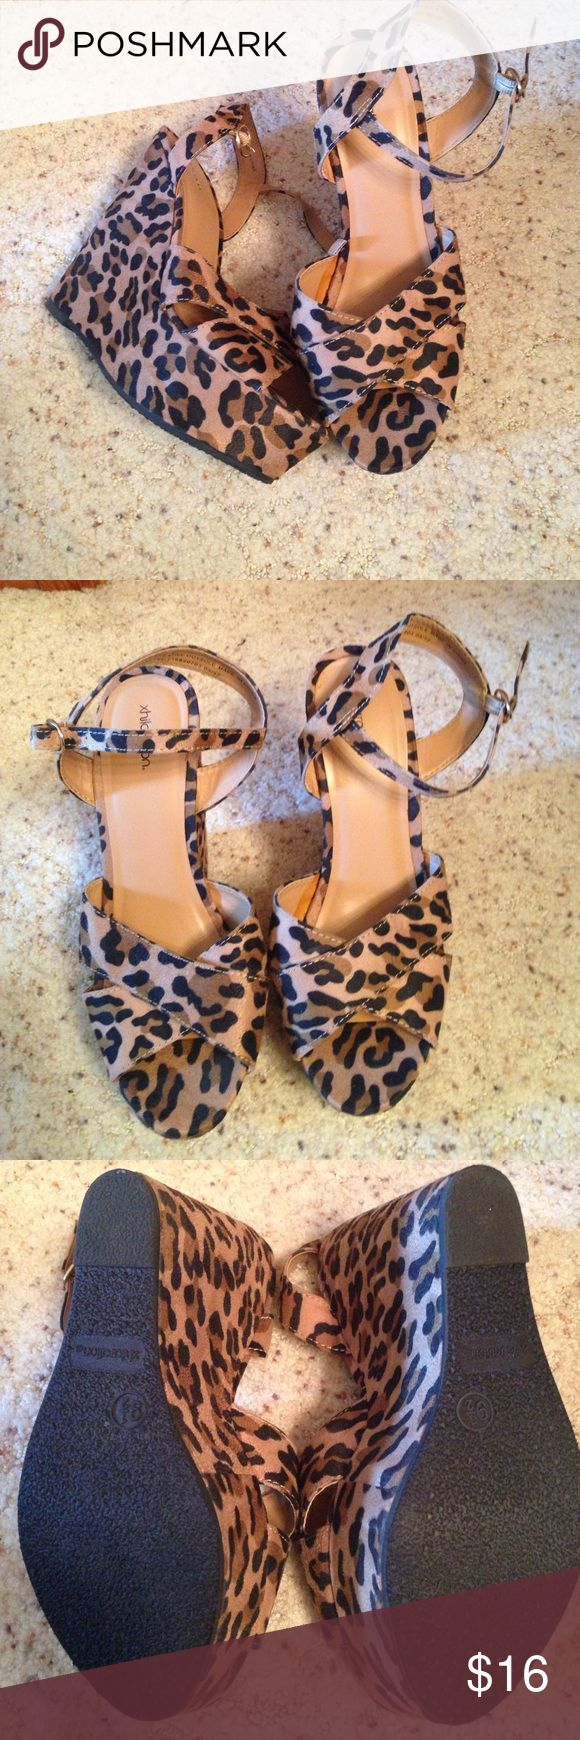 """Leopard print sandals Xhilaration leopard print platform wedges. Like new condition! Comfortable and sexy sandal!! Front platform is 2"""" and heel is 6"""". Xhilaration Shoes Wedges"""